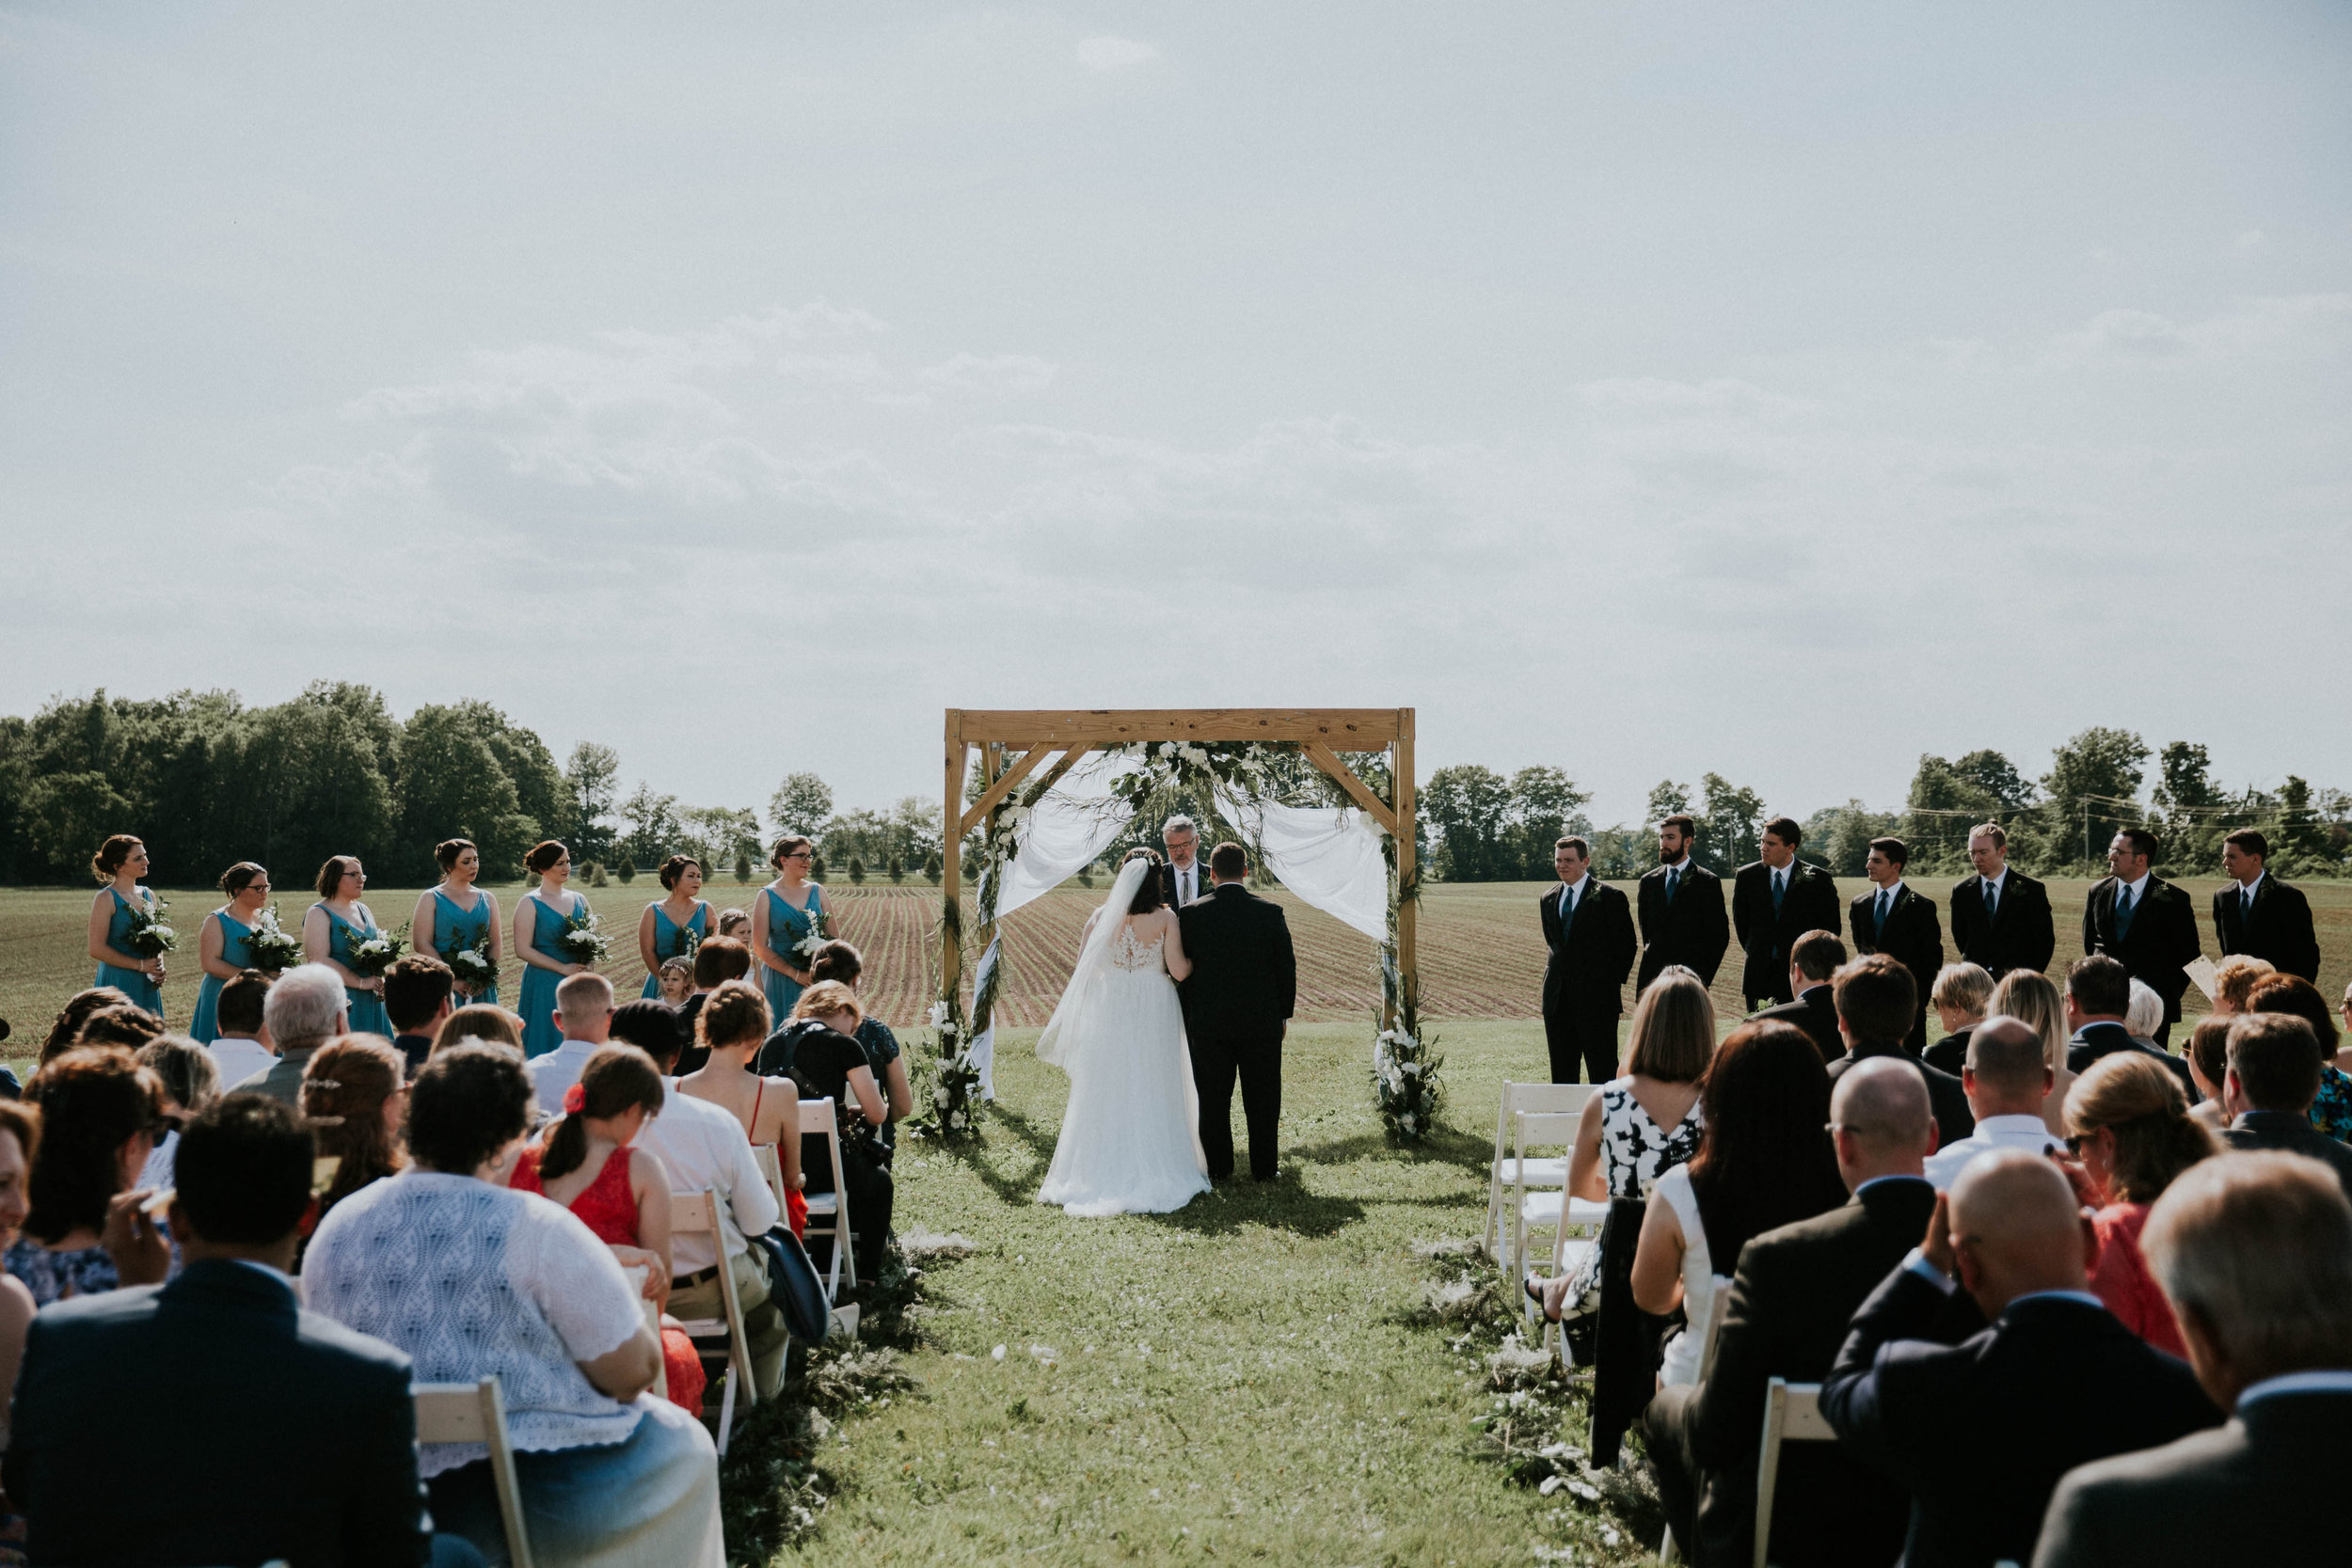 columbus ohio wedding photographer grace e jones photography126.jpg